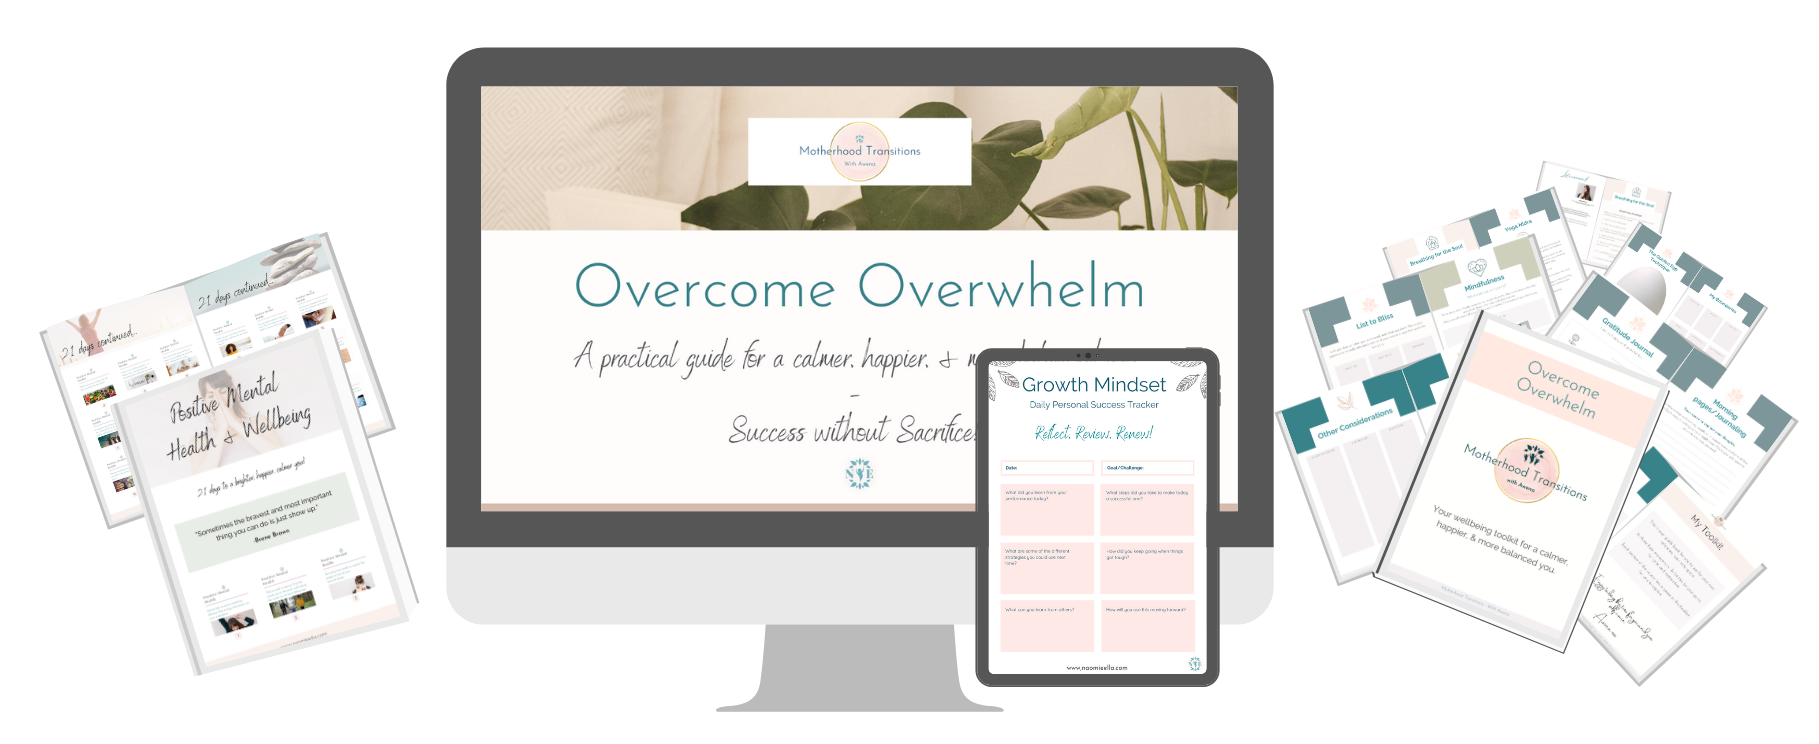 Overcome overwhelm by awena